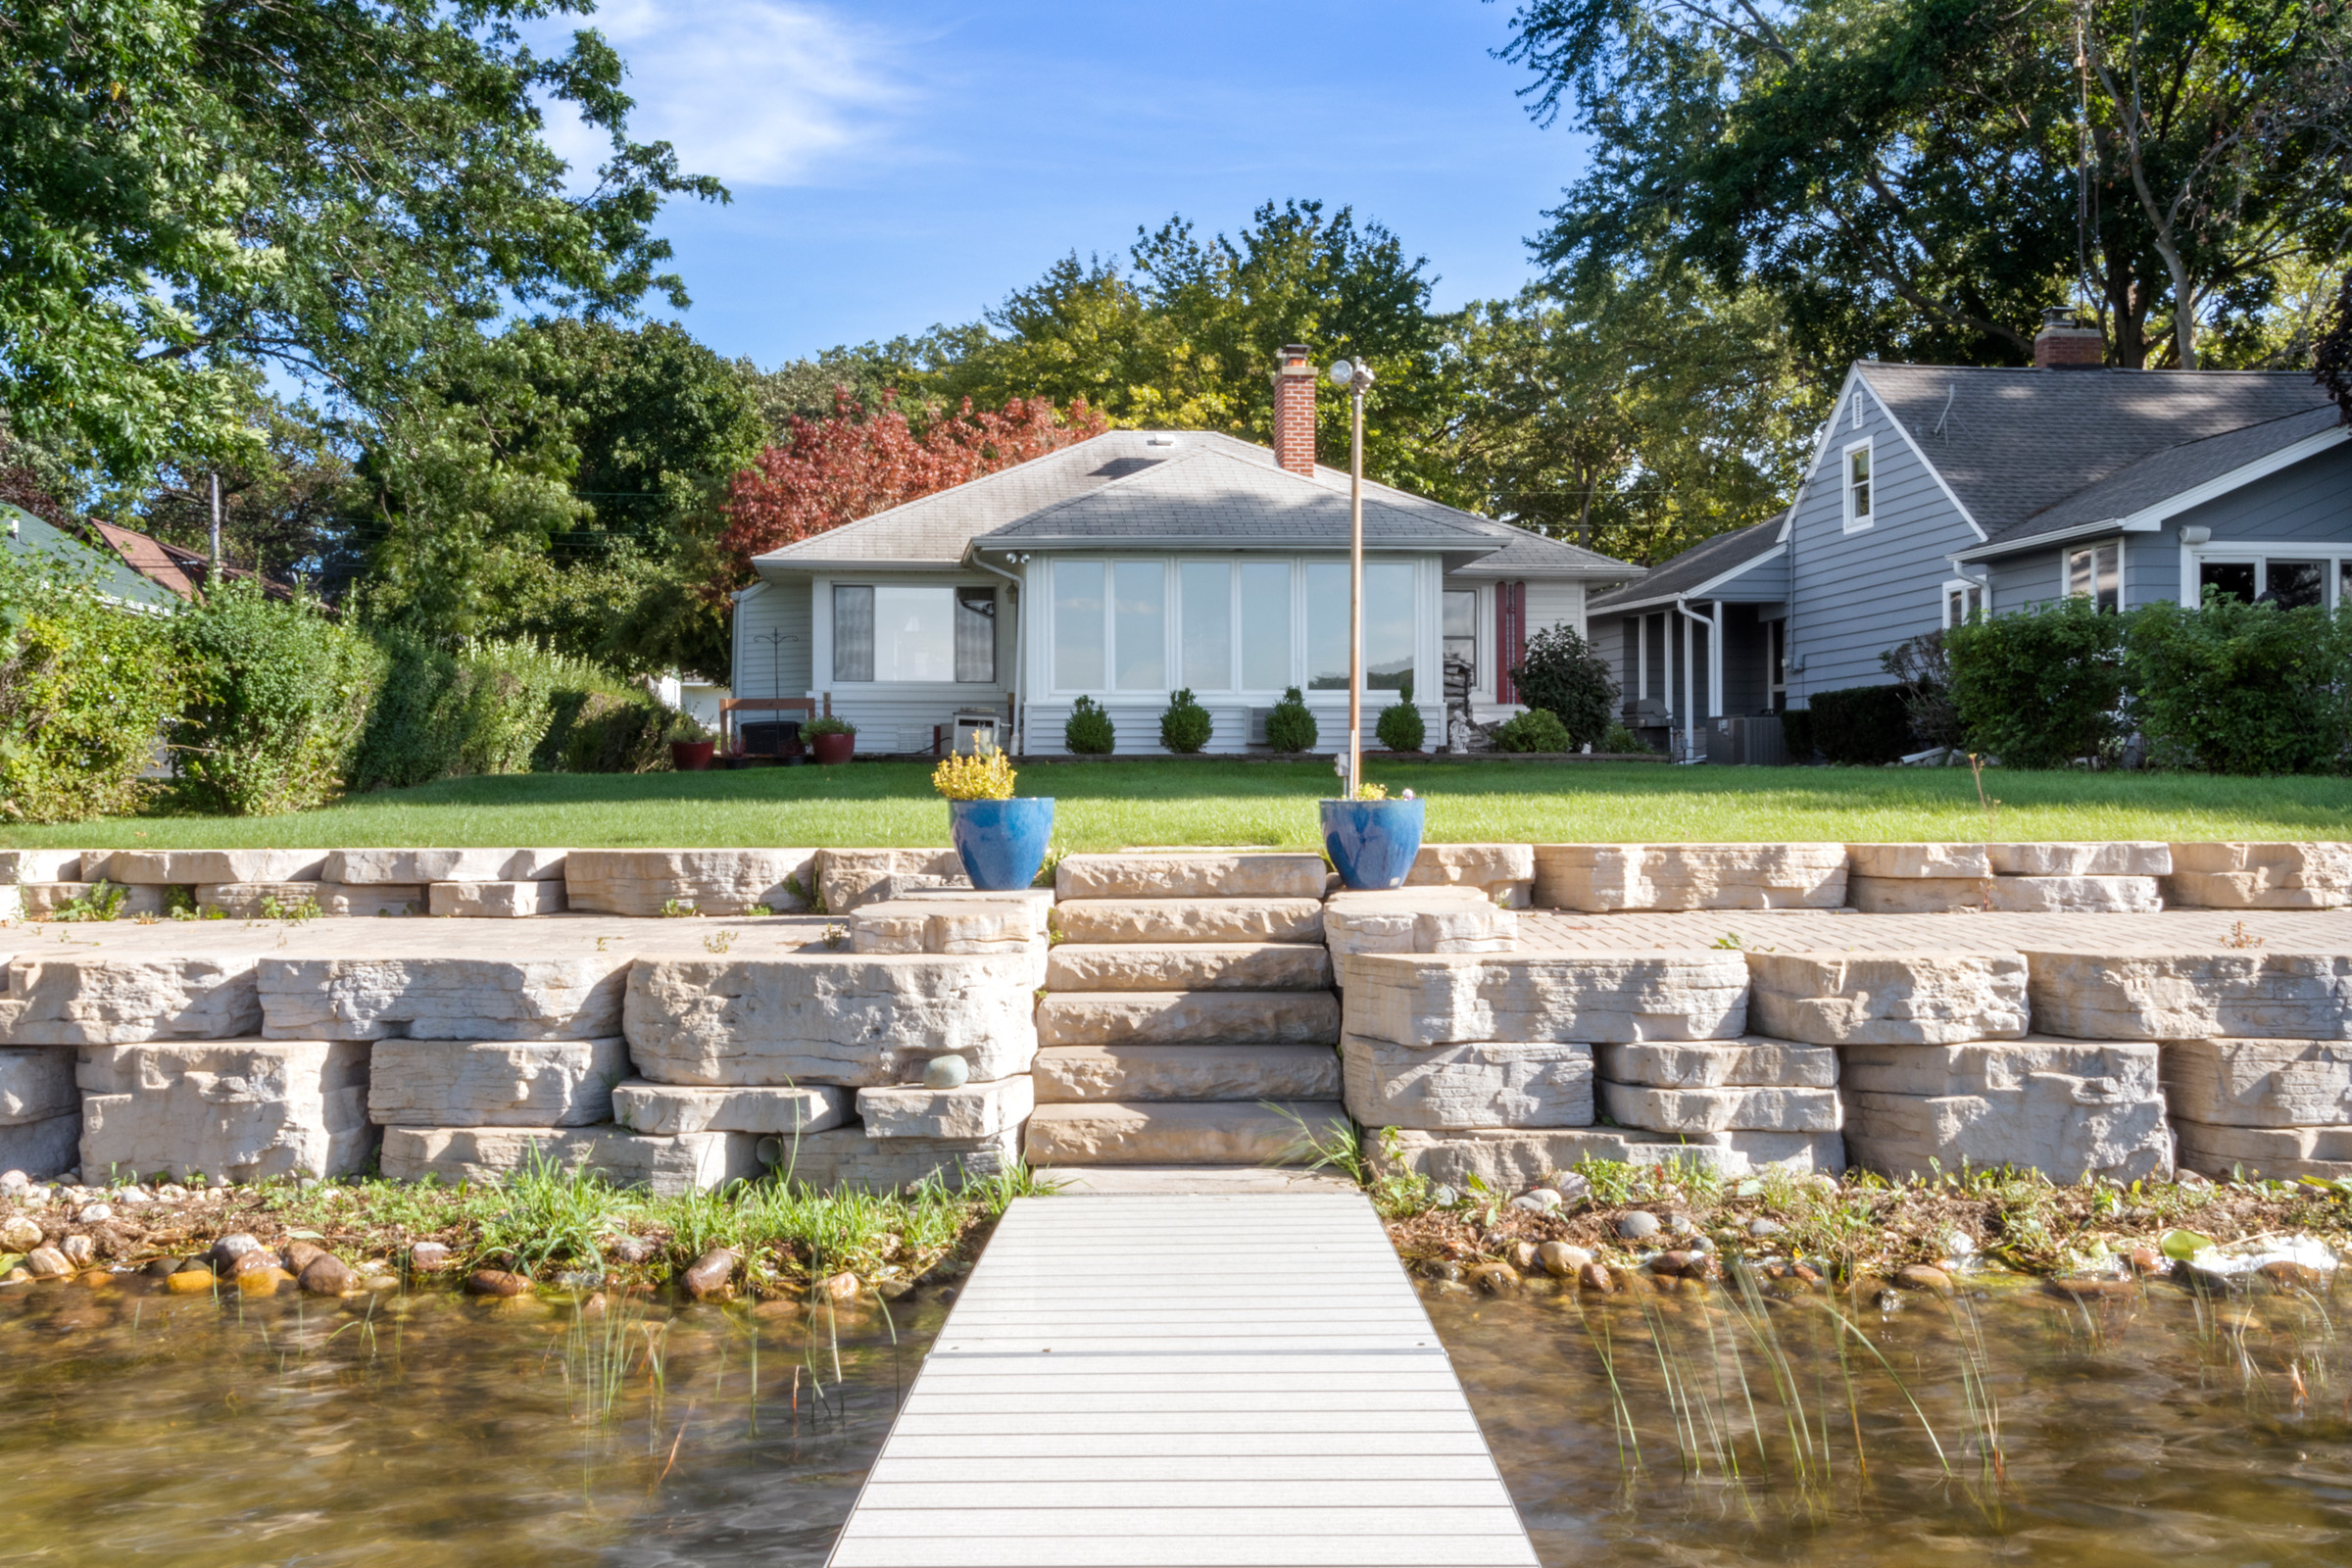 New Listing: 2BR, 1.5BA Lakefront Home on Powers Lake | 9030 Lake Park Dr, Powers Lake WI